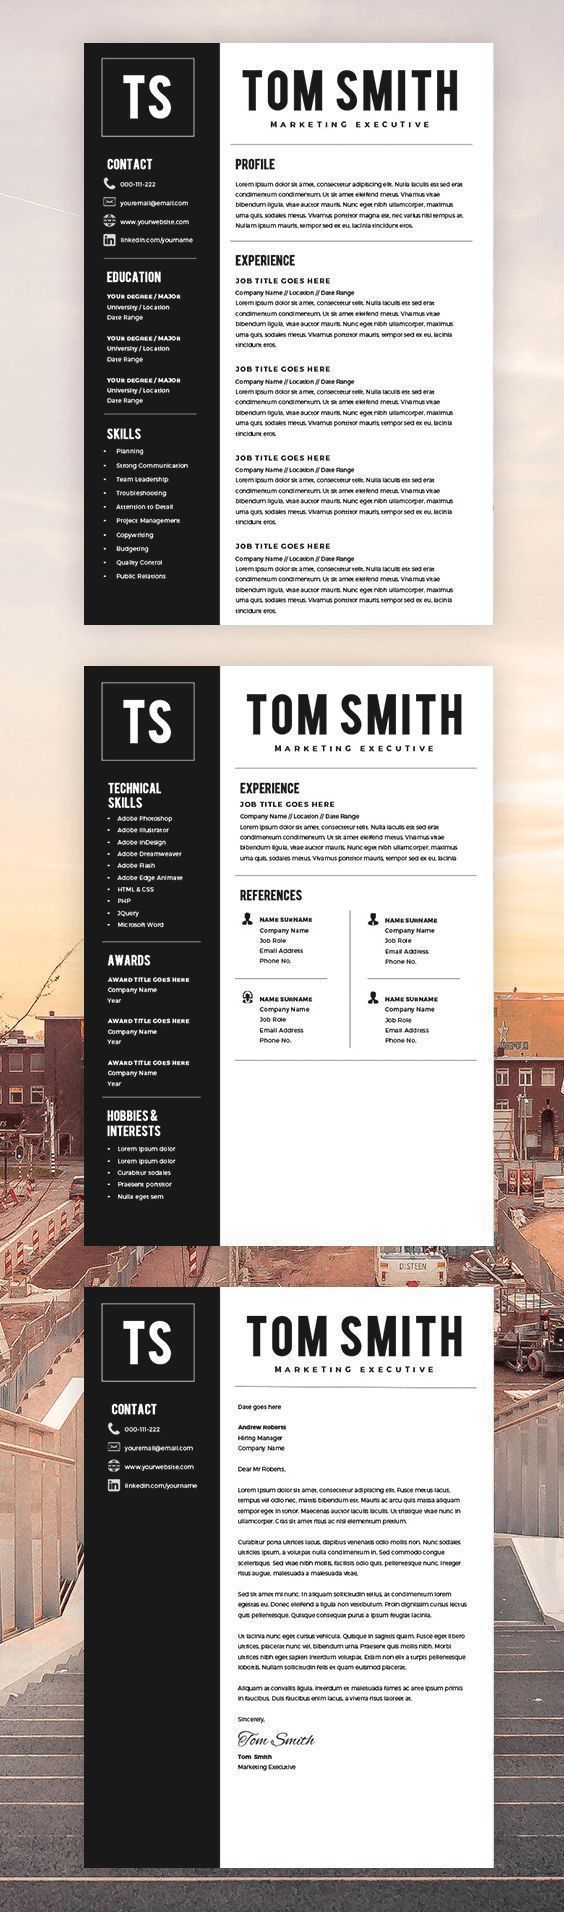 Two Page Resume Template - Resume Builder - CV Template + Cover ...